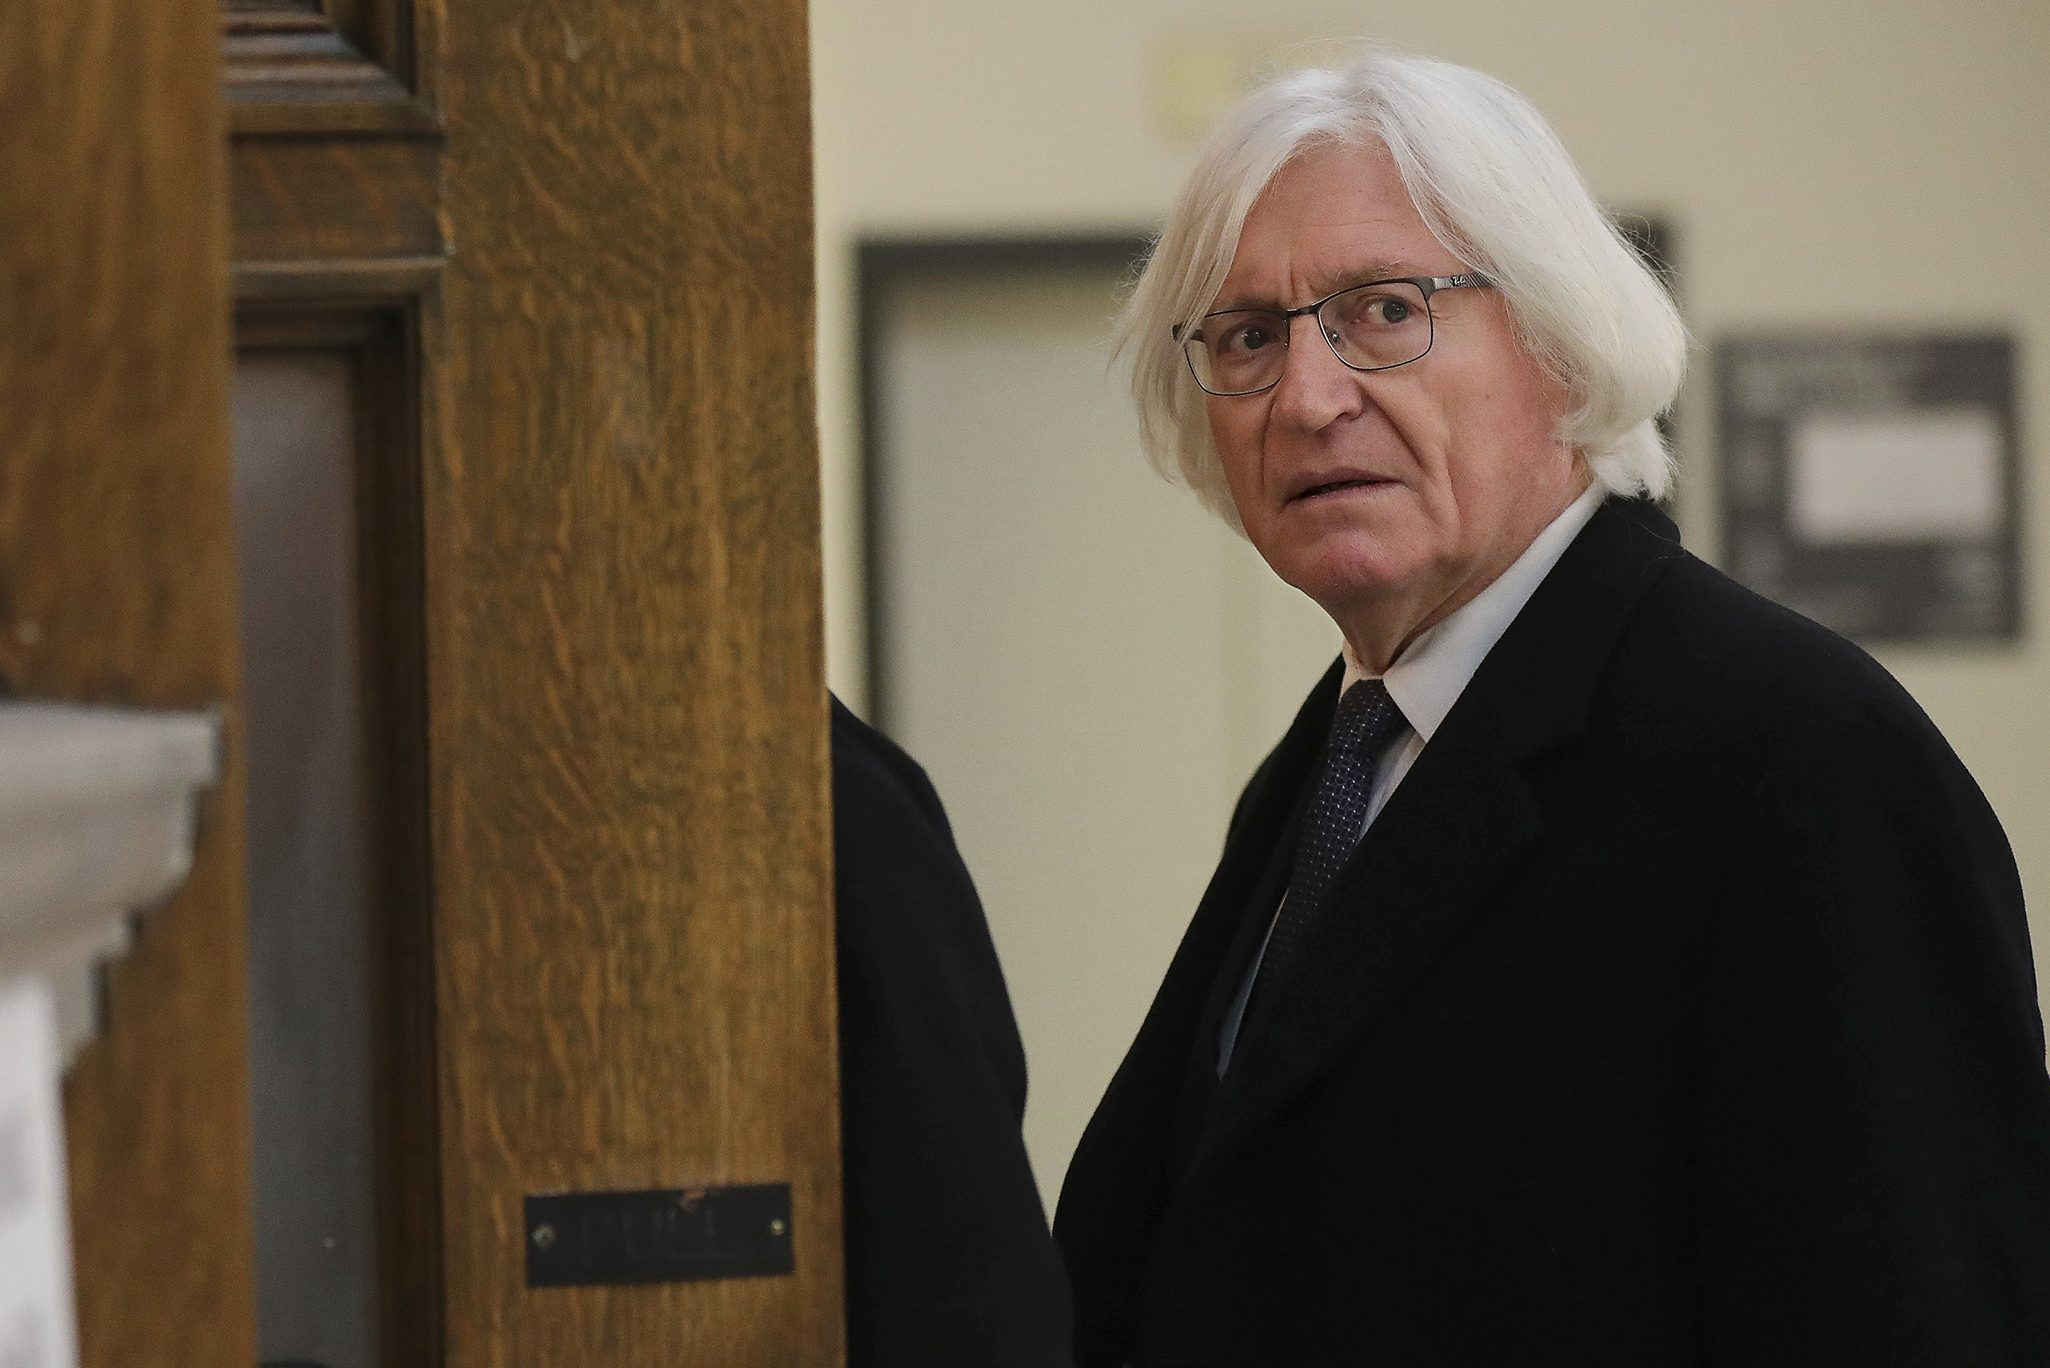 Tom Mesereau, lawyer for actor and comedian Bill Cosby, arrives for Cosby´s sexual assault retrial at the Montgomery County Courthouse in Norristown, Pa., on Tuesday, April 10, 2018.